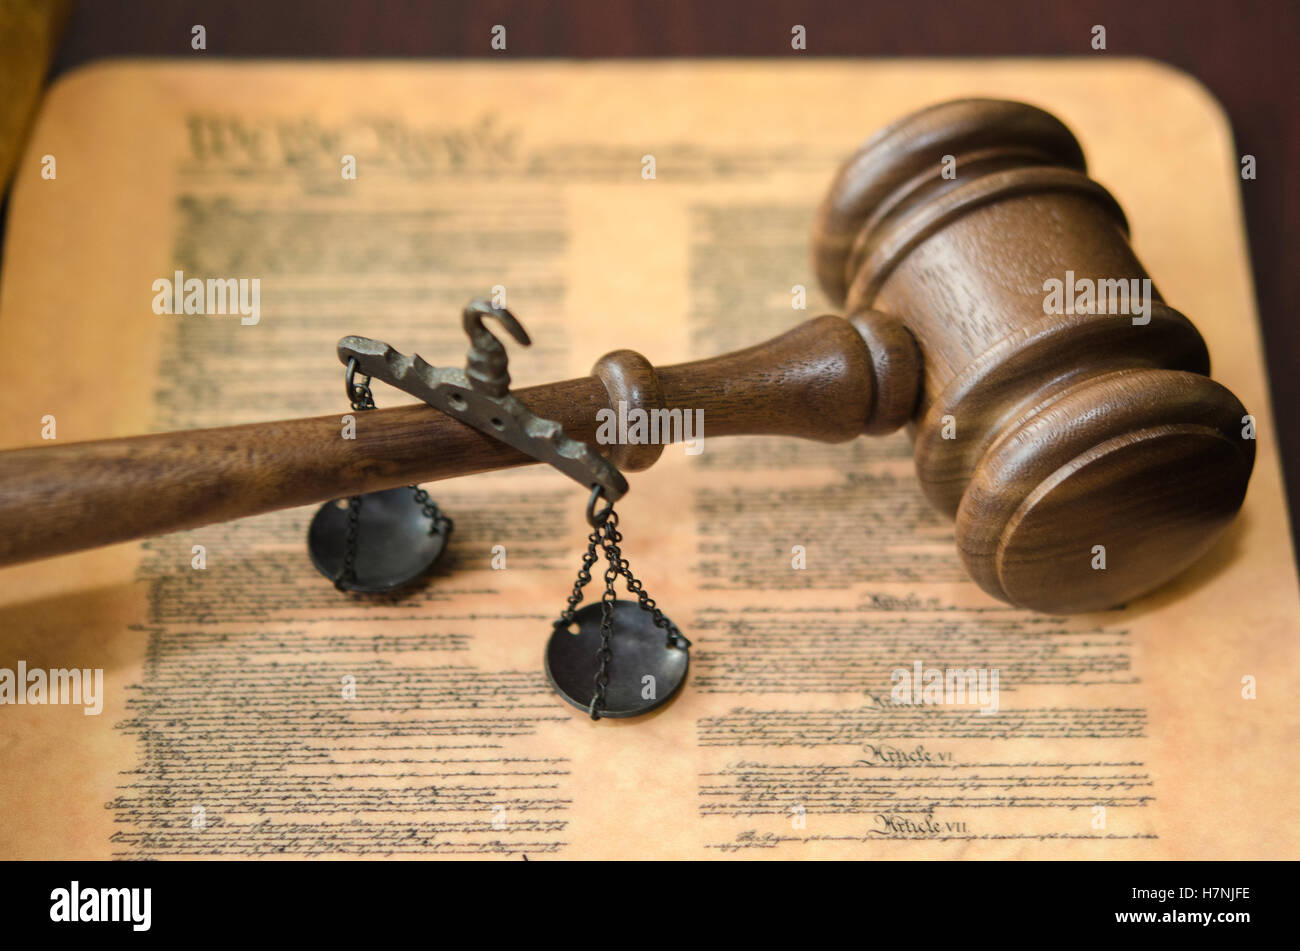 Gavel Scales and Constitution - Stock Image